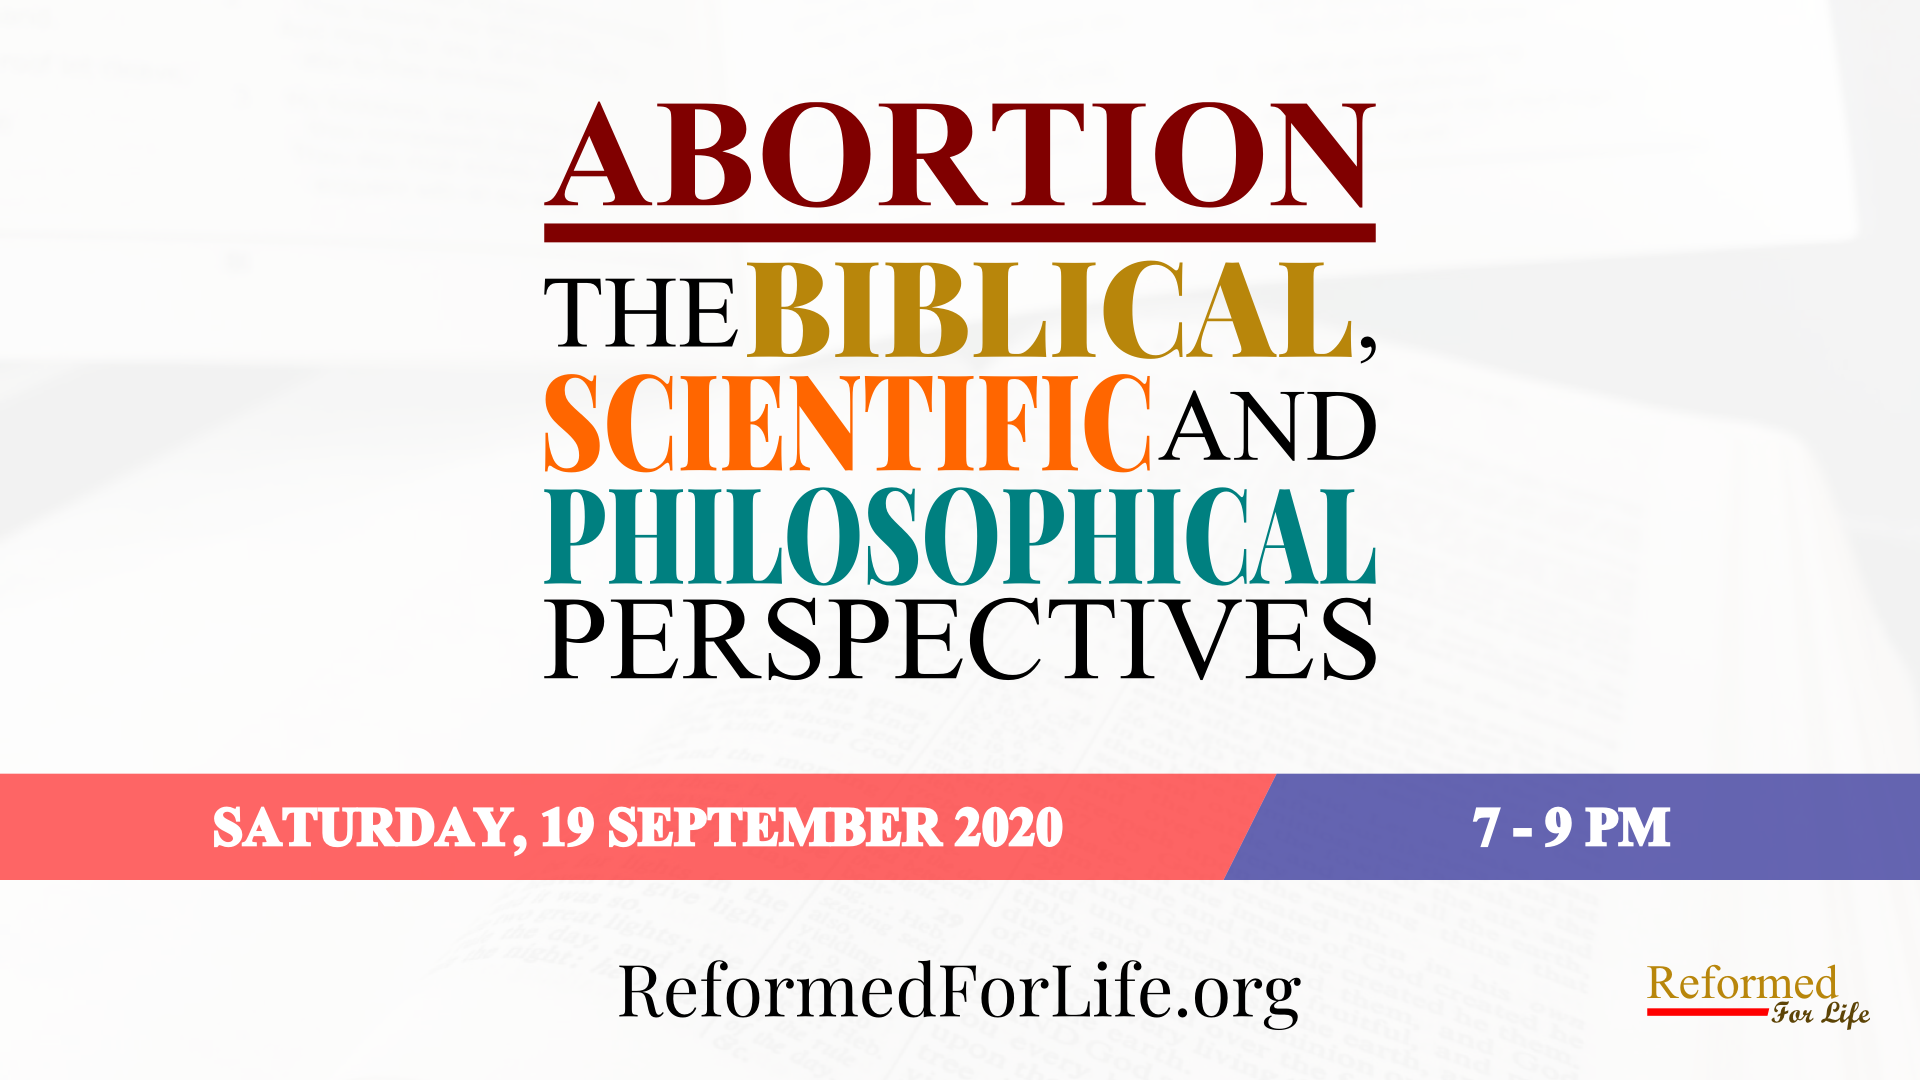 Abortion: The Biblical, Scientific and Philosophical Perspectives